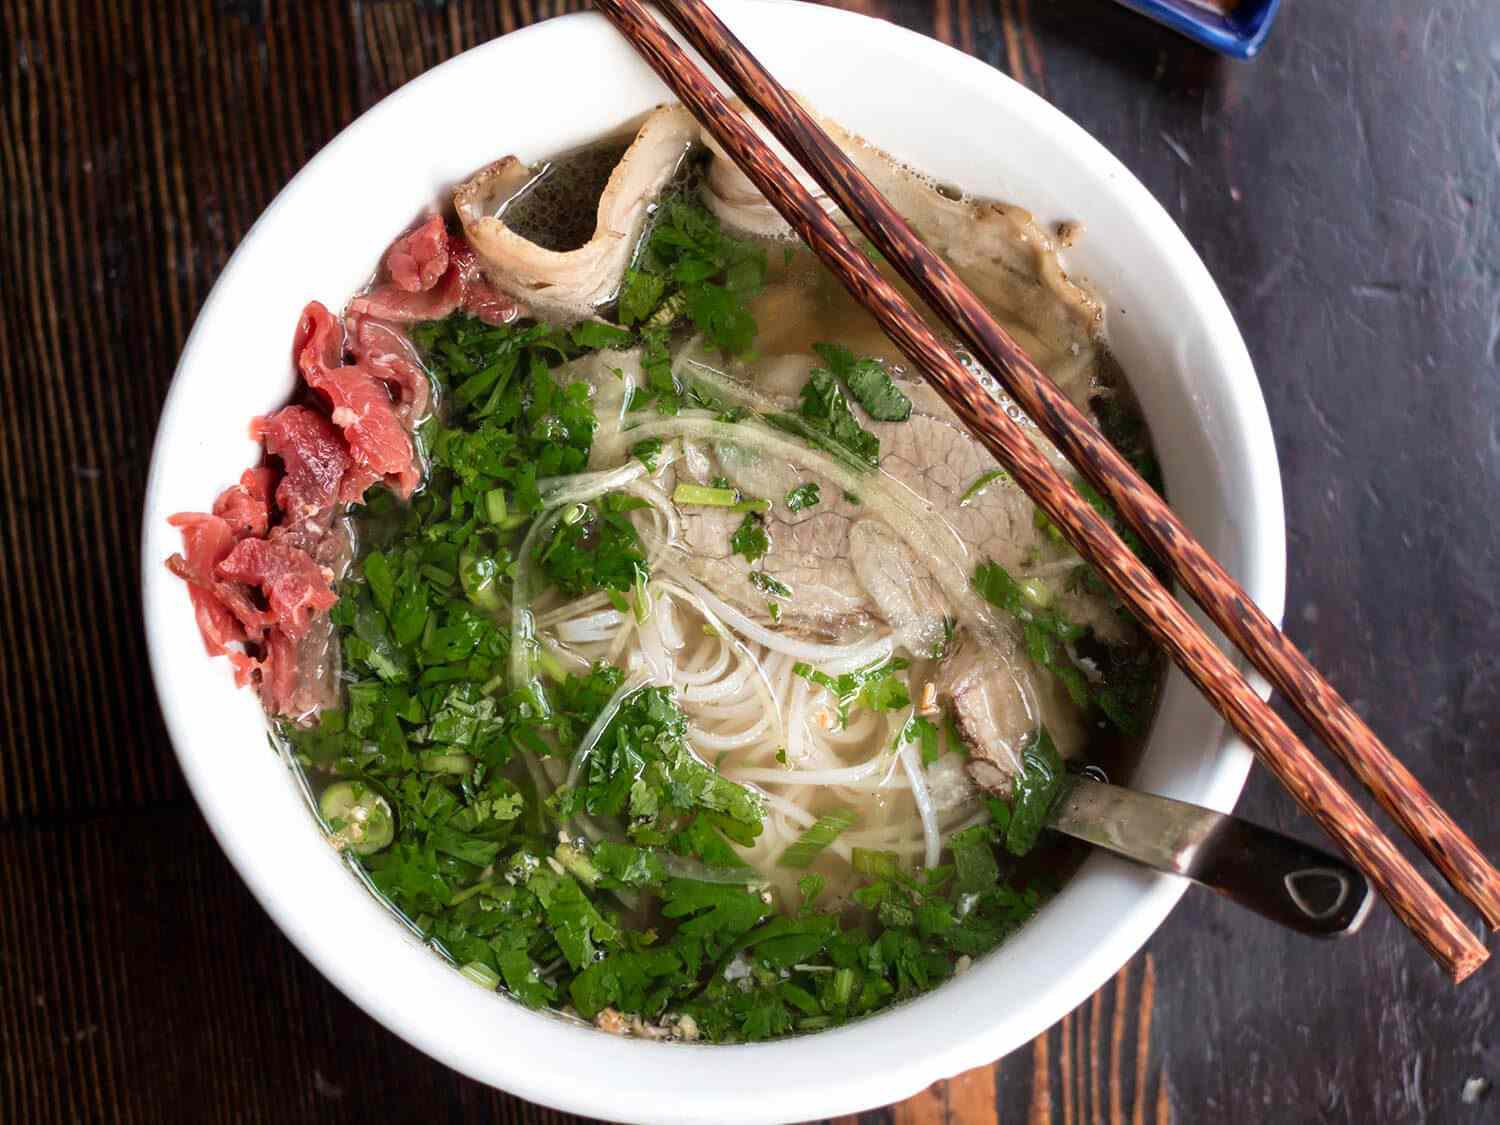 Overhead shot of bowl of pho with meat, noodles, herbs, and a pair of chopsticks resting on the side of the bowl